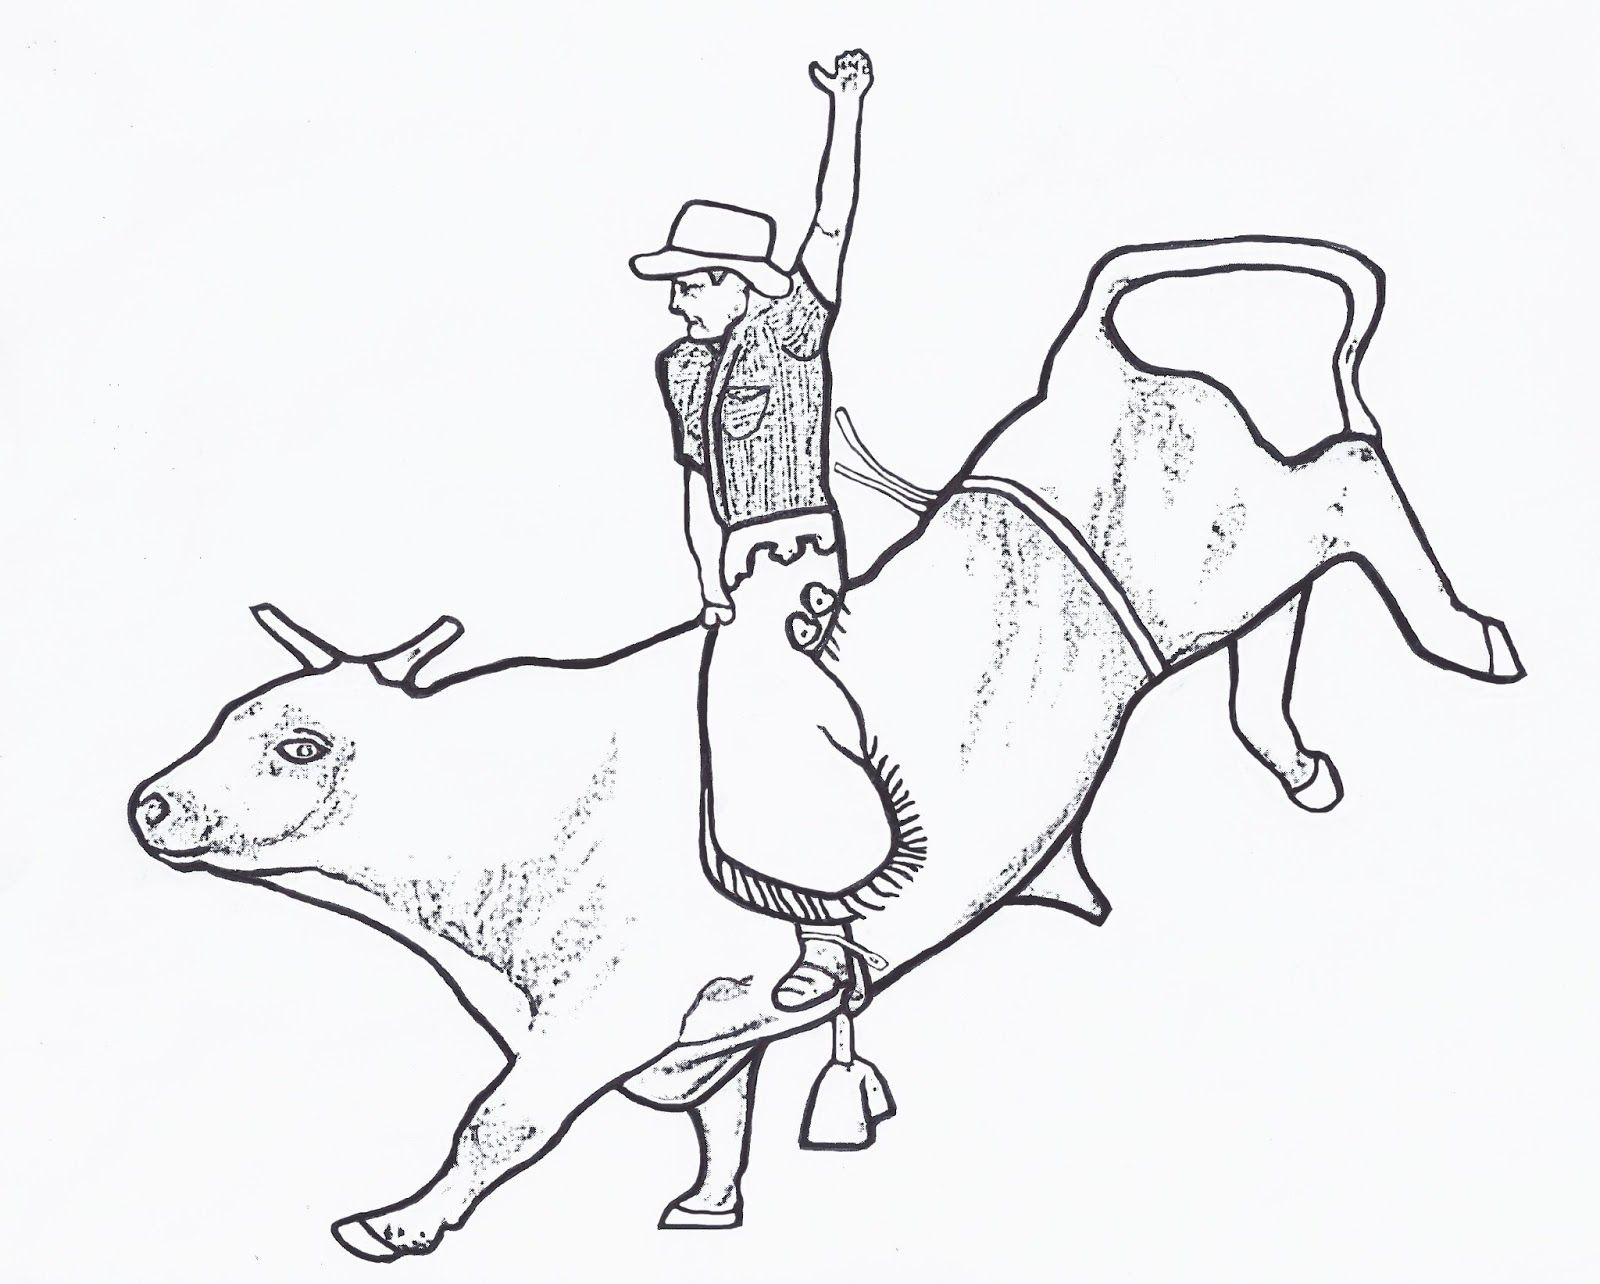 Co co coloring pages of a cowgirl - Bull Riding Coloring Pages 02